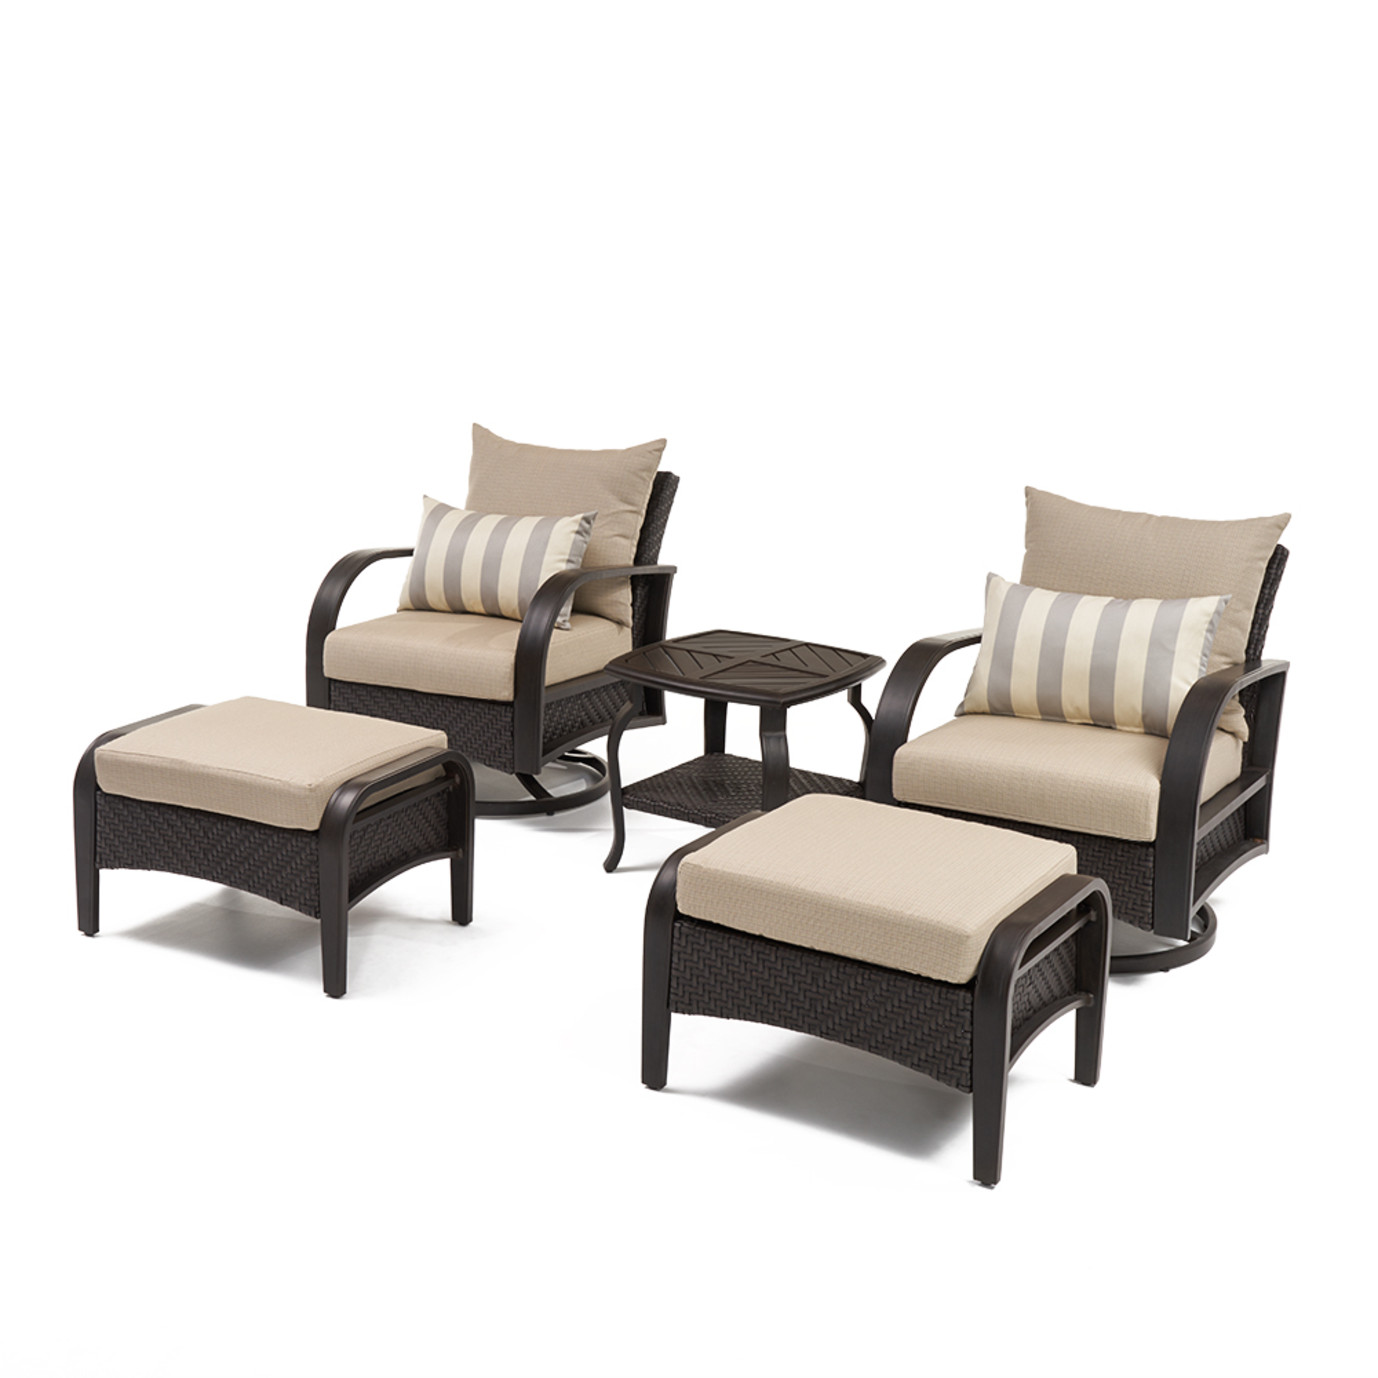 Barcelo™ 5pc Motion Club & Ottoman Set - Slate Gray